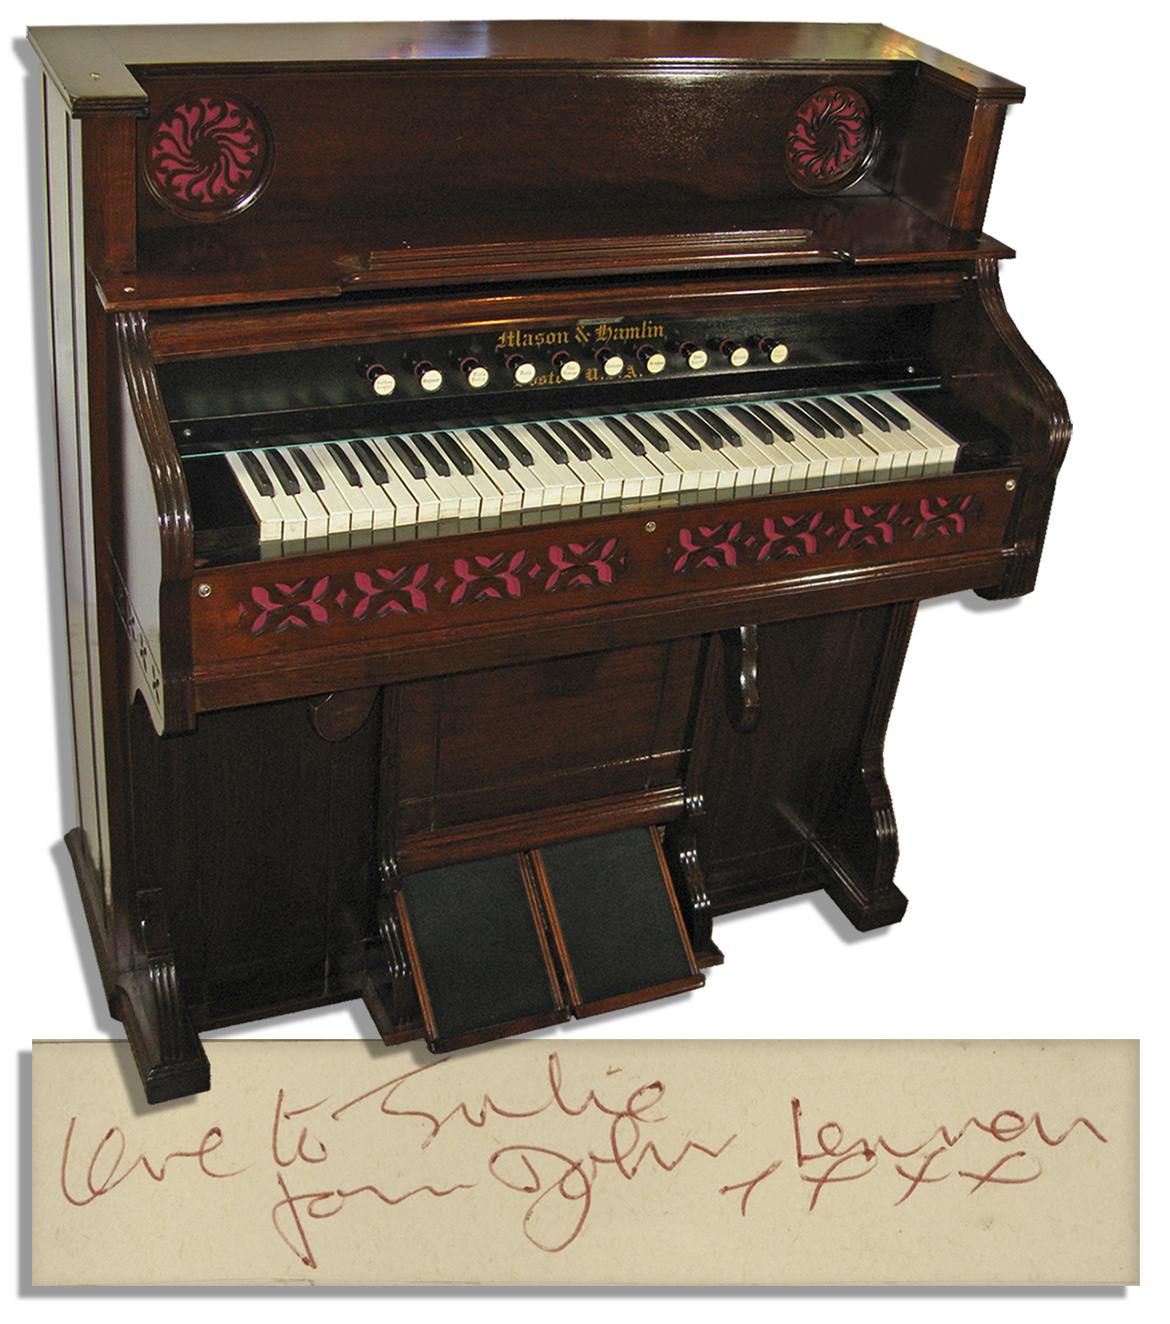 John Lennon guitar John Lennon Memorabilia Exceptionally Rare John Lennon Personally Owned & Played Musical Instrument -- Reed Organ Made of Walnut in Dark Finish -- With Provenance From Sotheby's